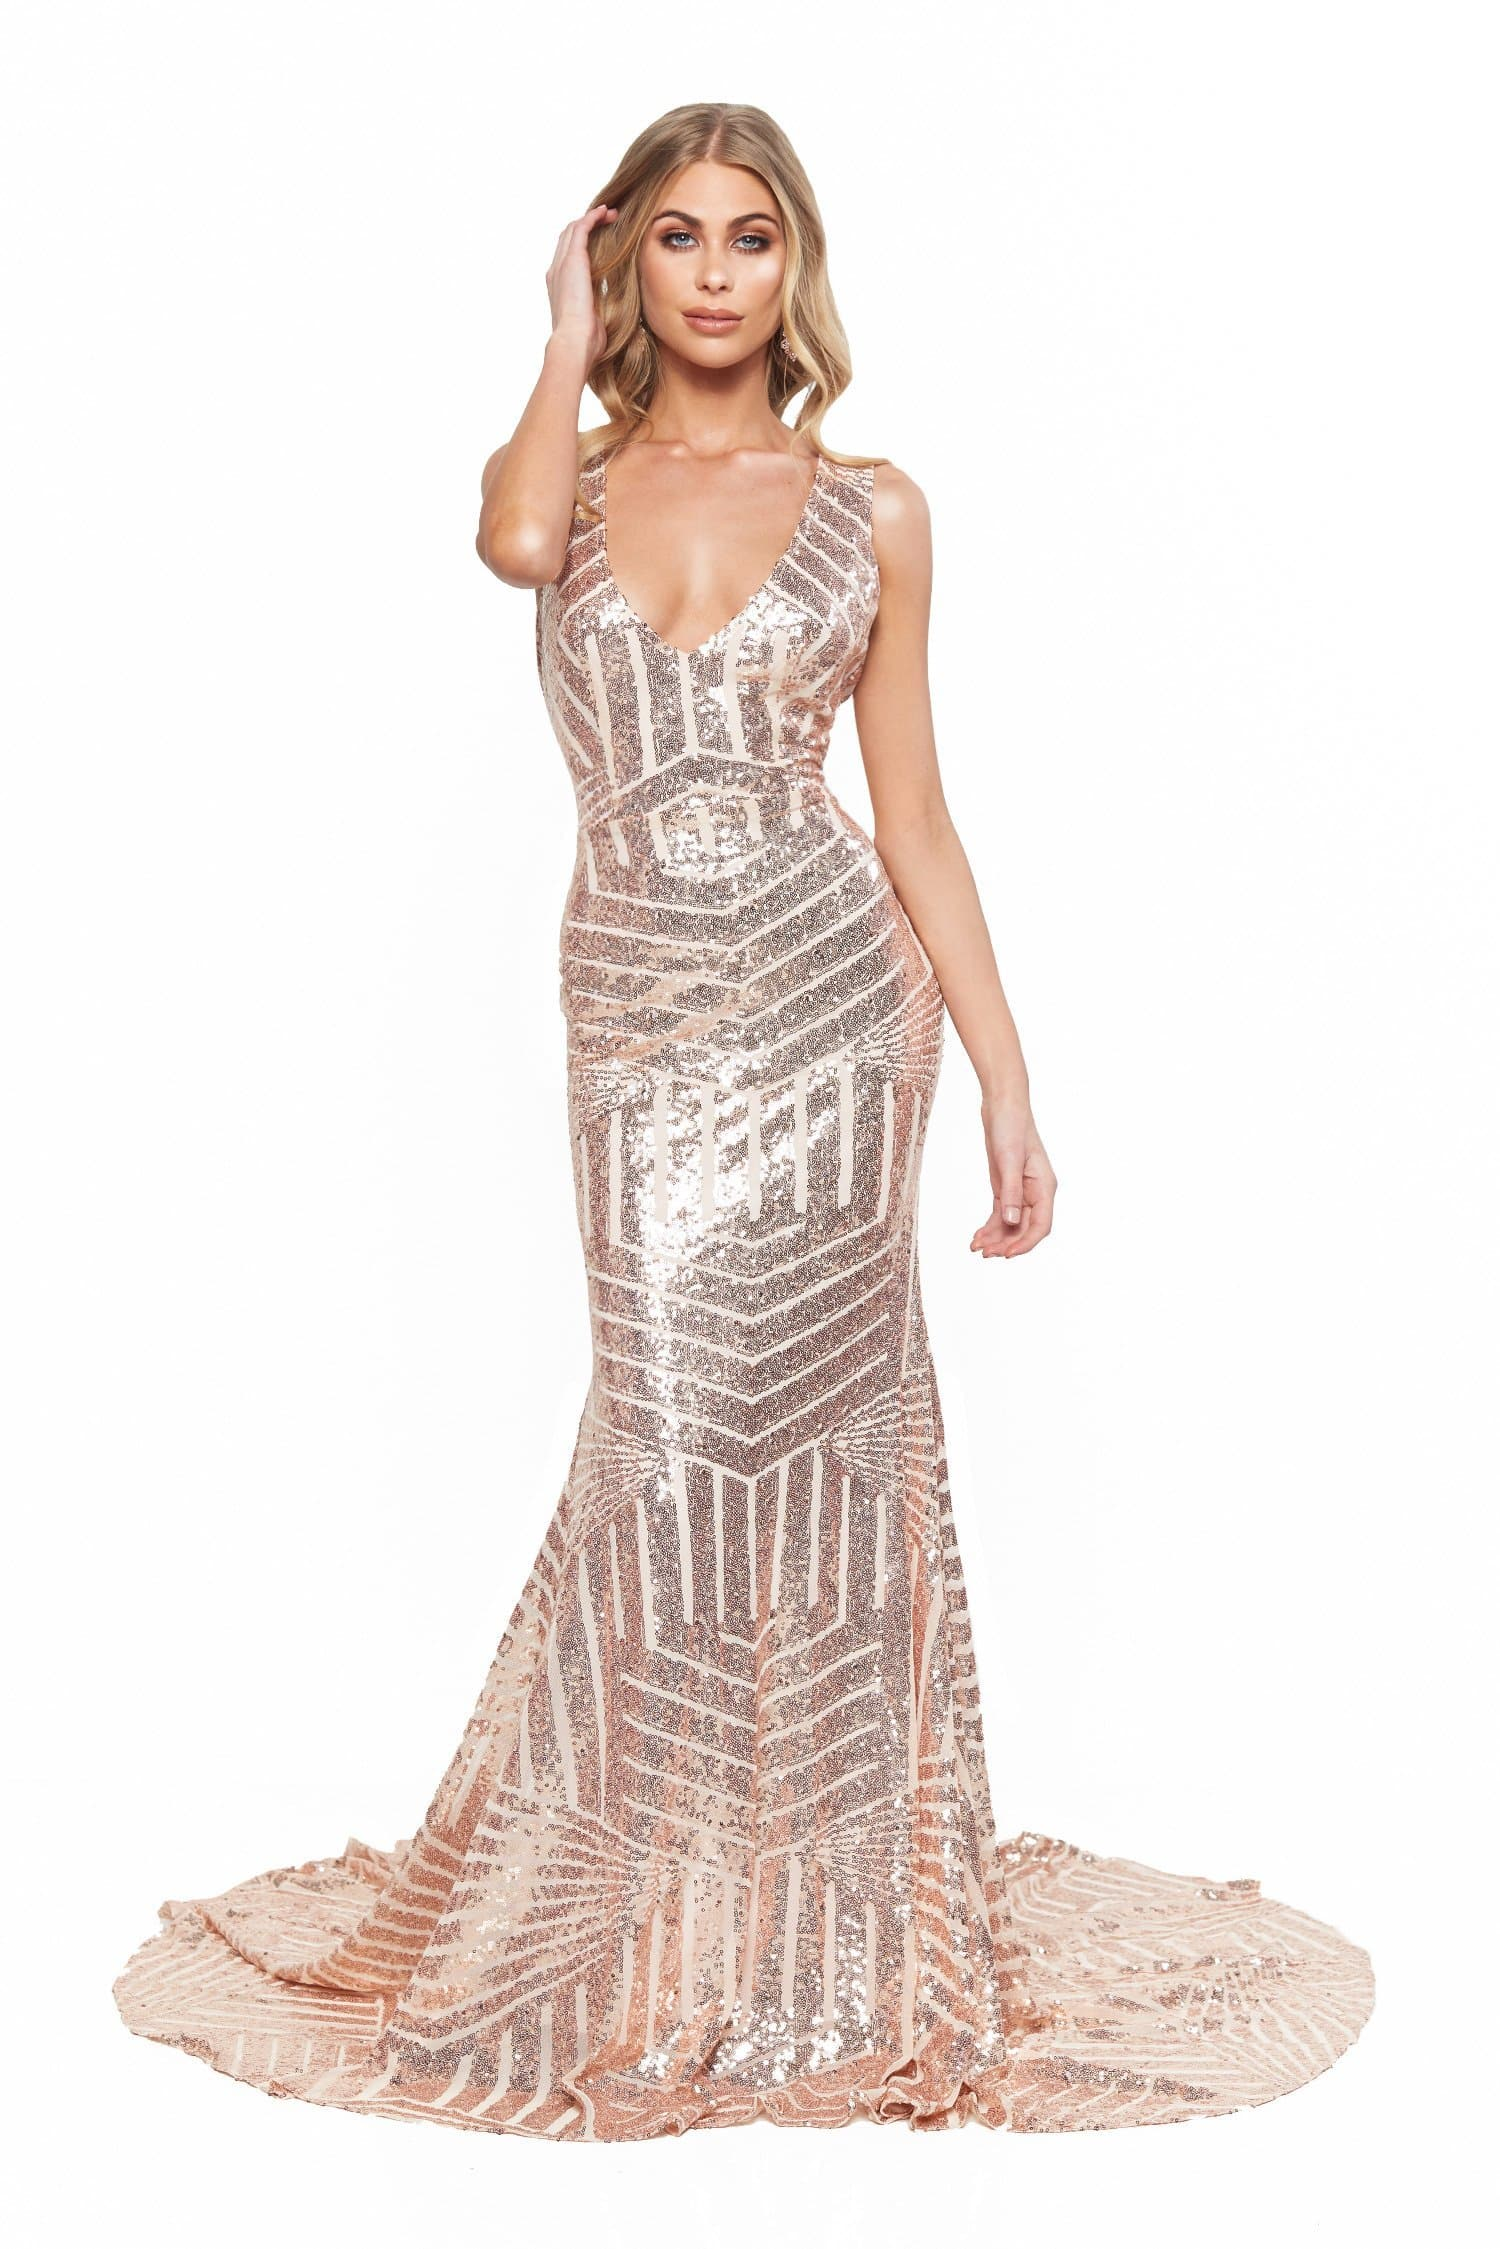 A&N Bridesmaids Serena Sequin Low Back Mermaid Gown - Rose Gold